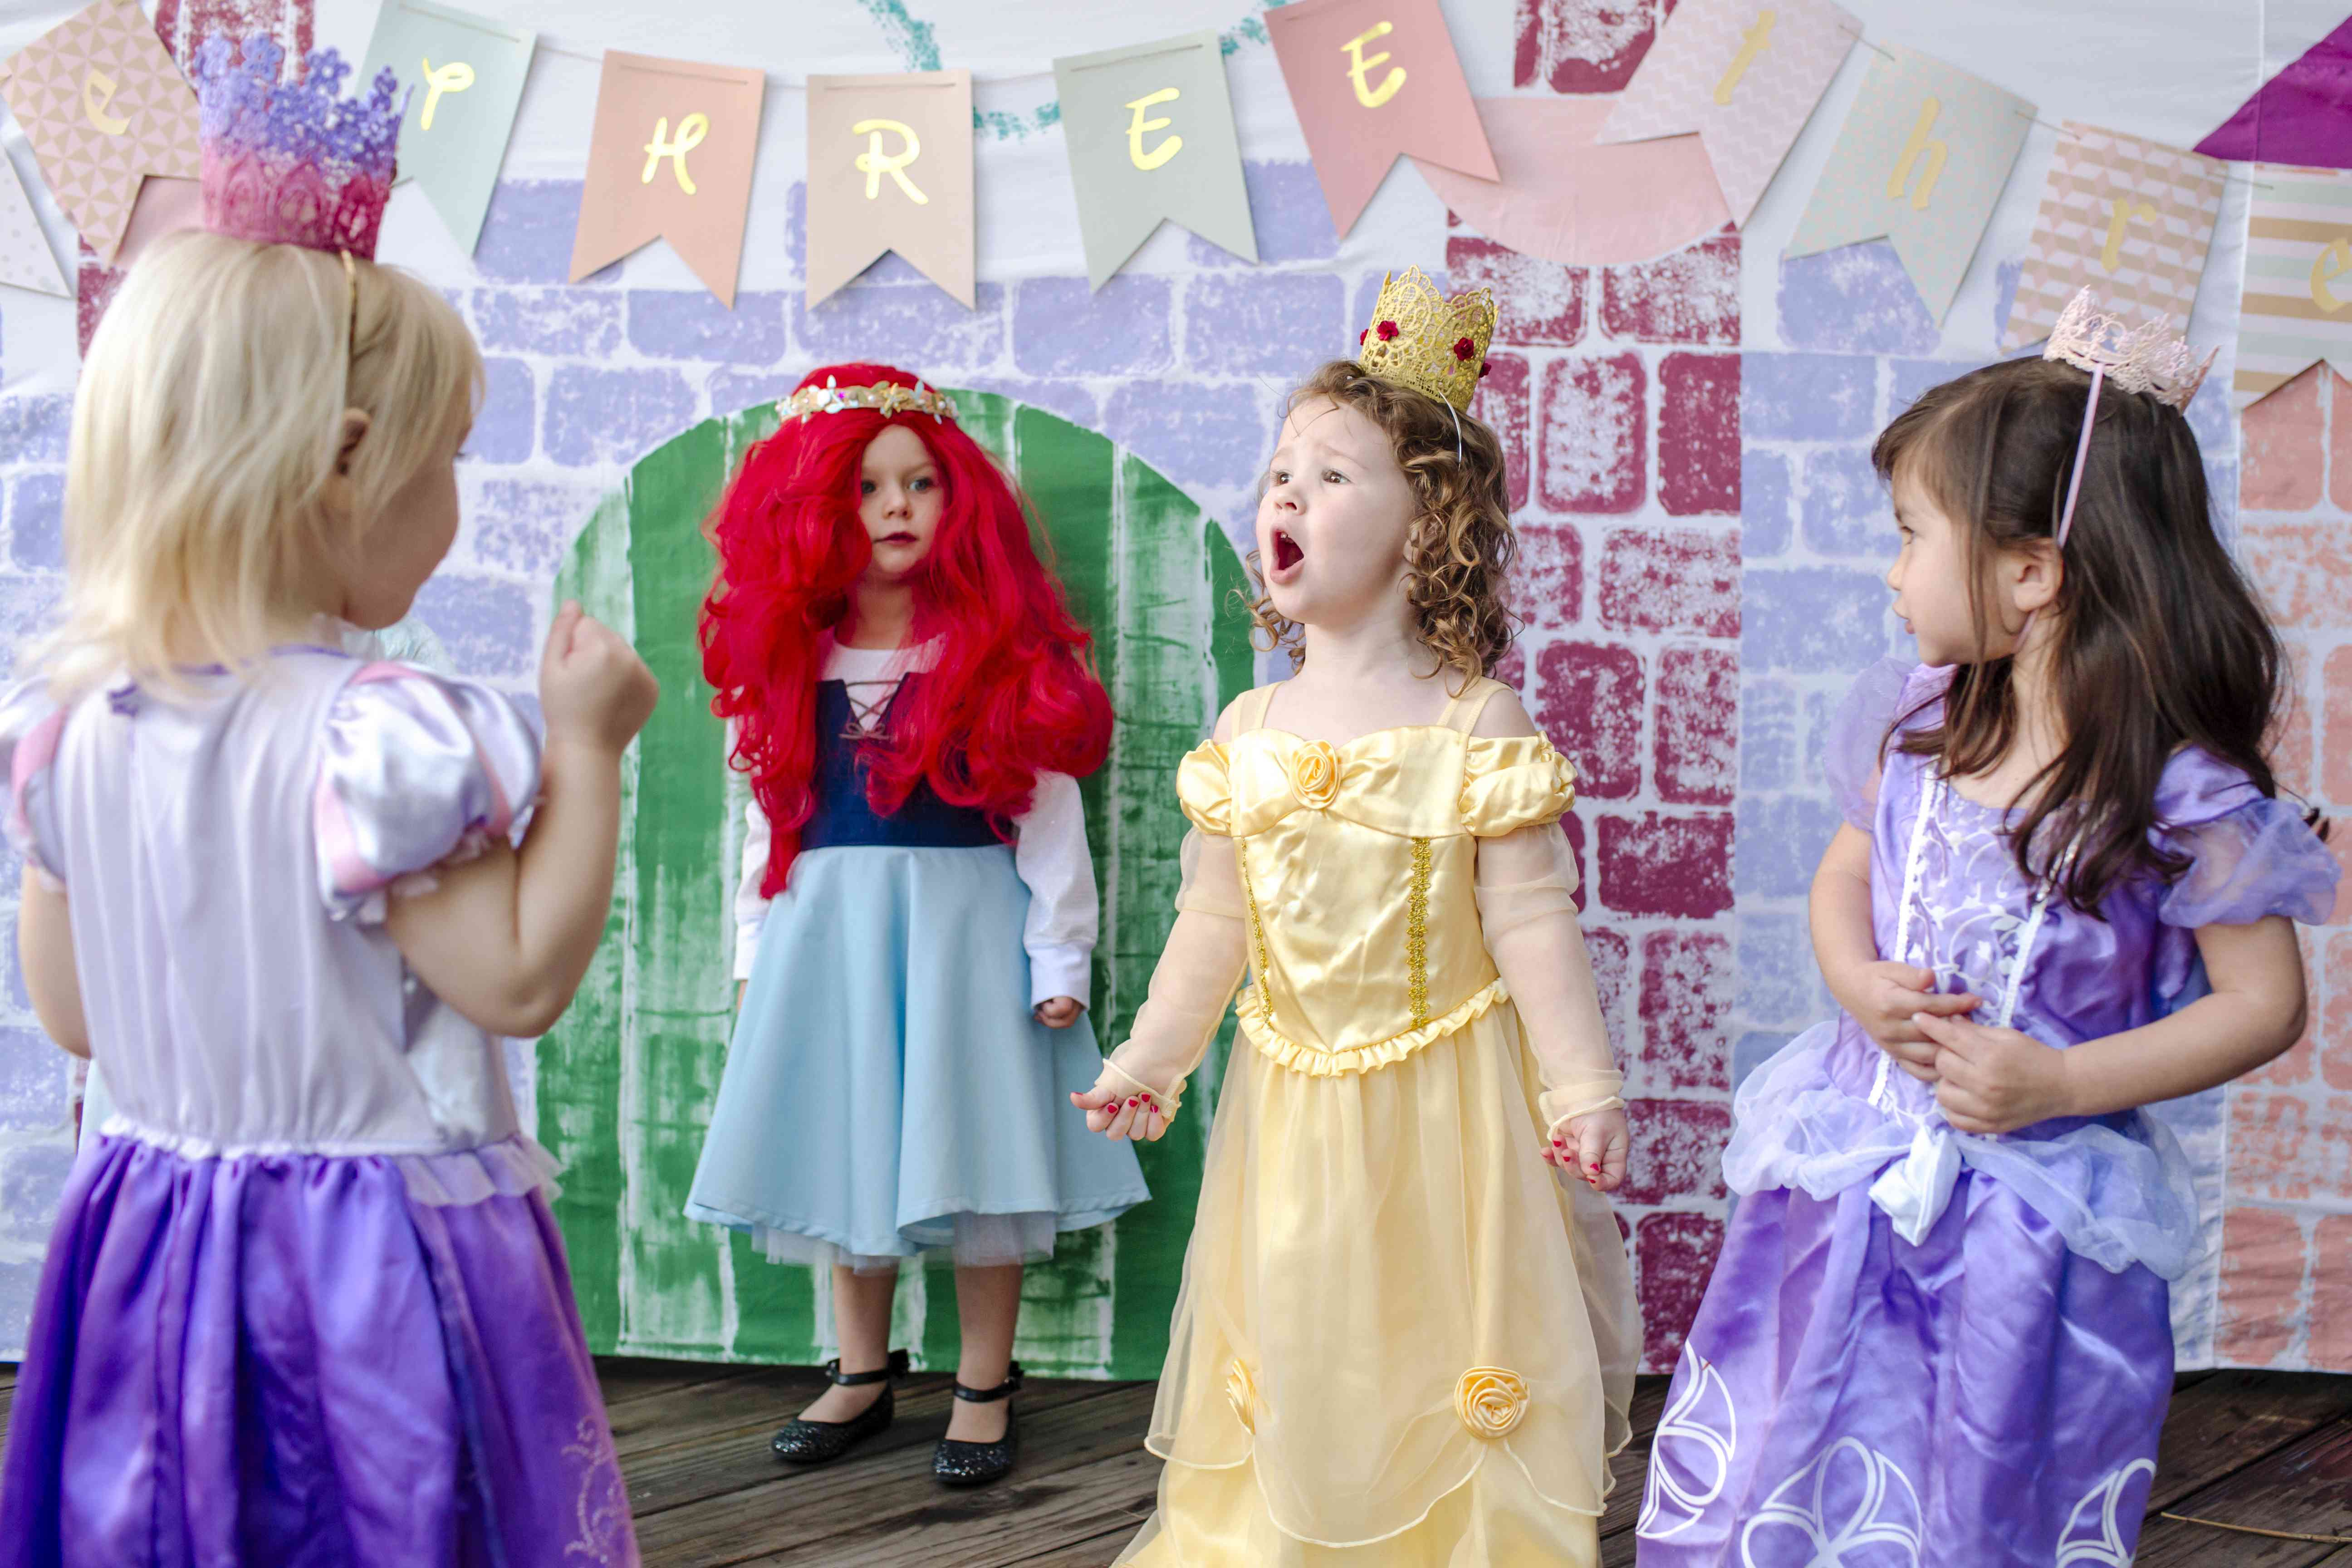 Playful girls against castle painting during princess party